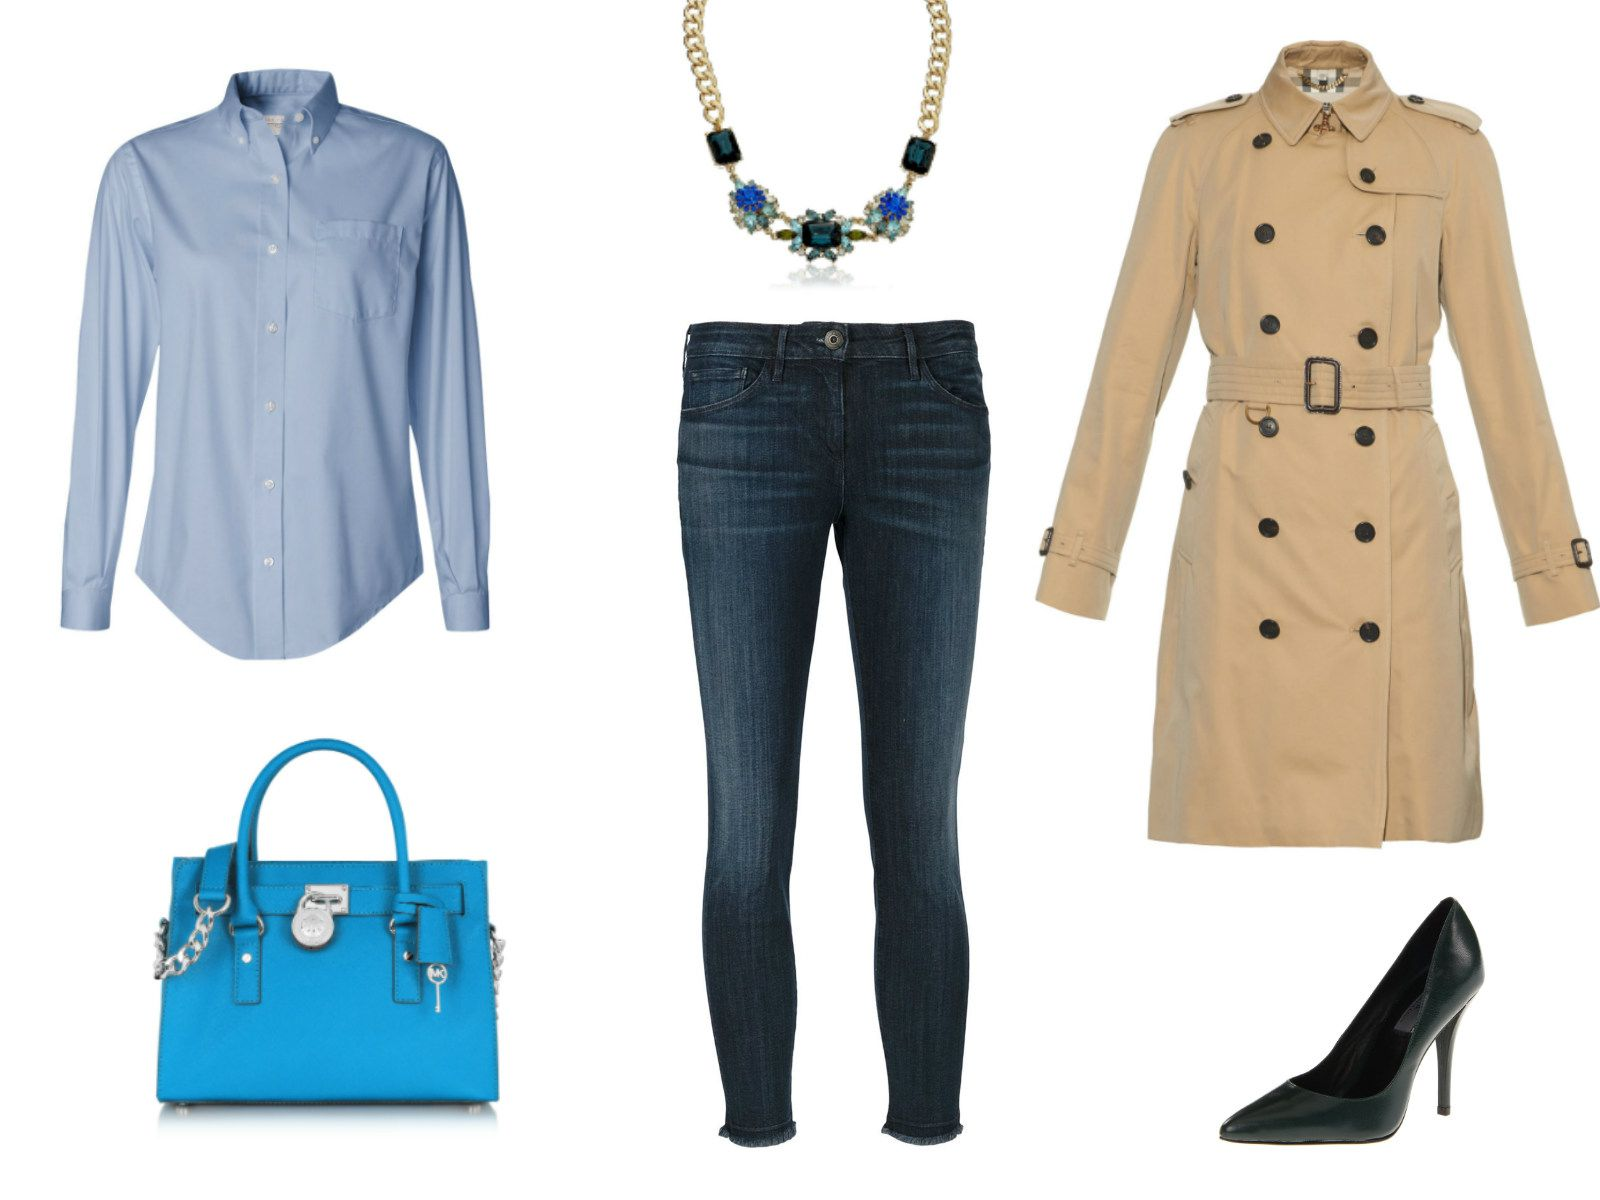 Outfit ideas - cropped skinny jeans and blue button-down